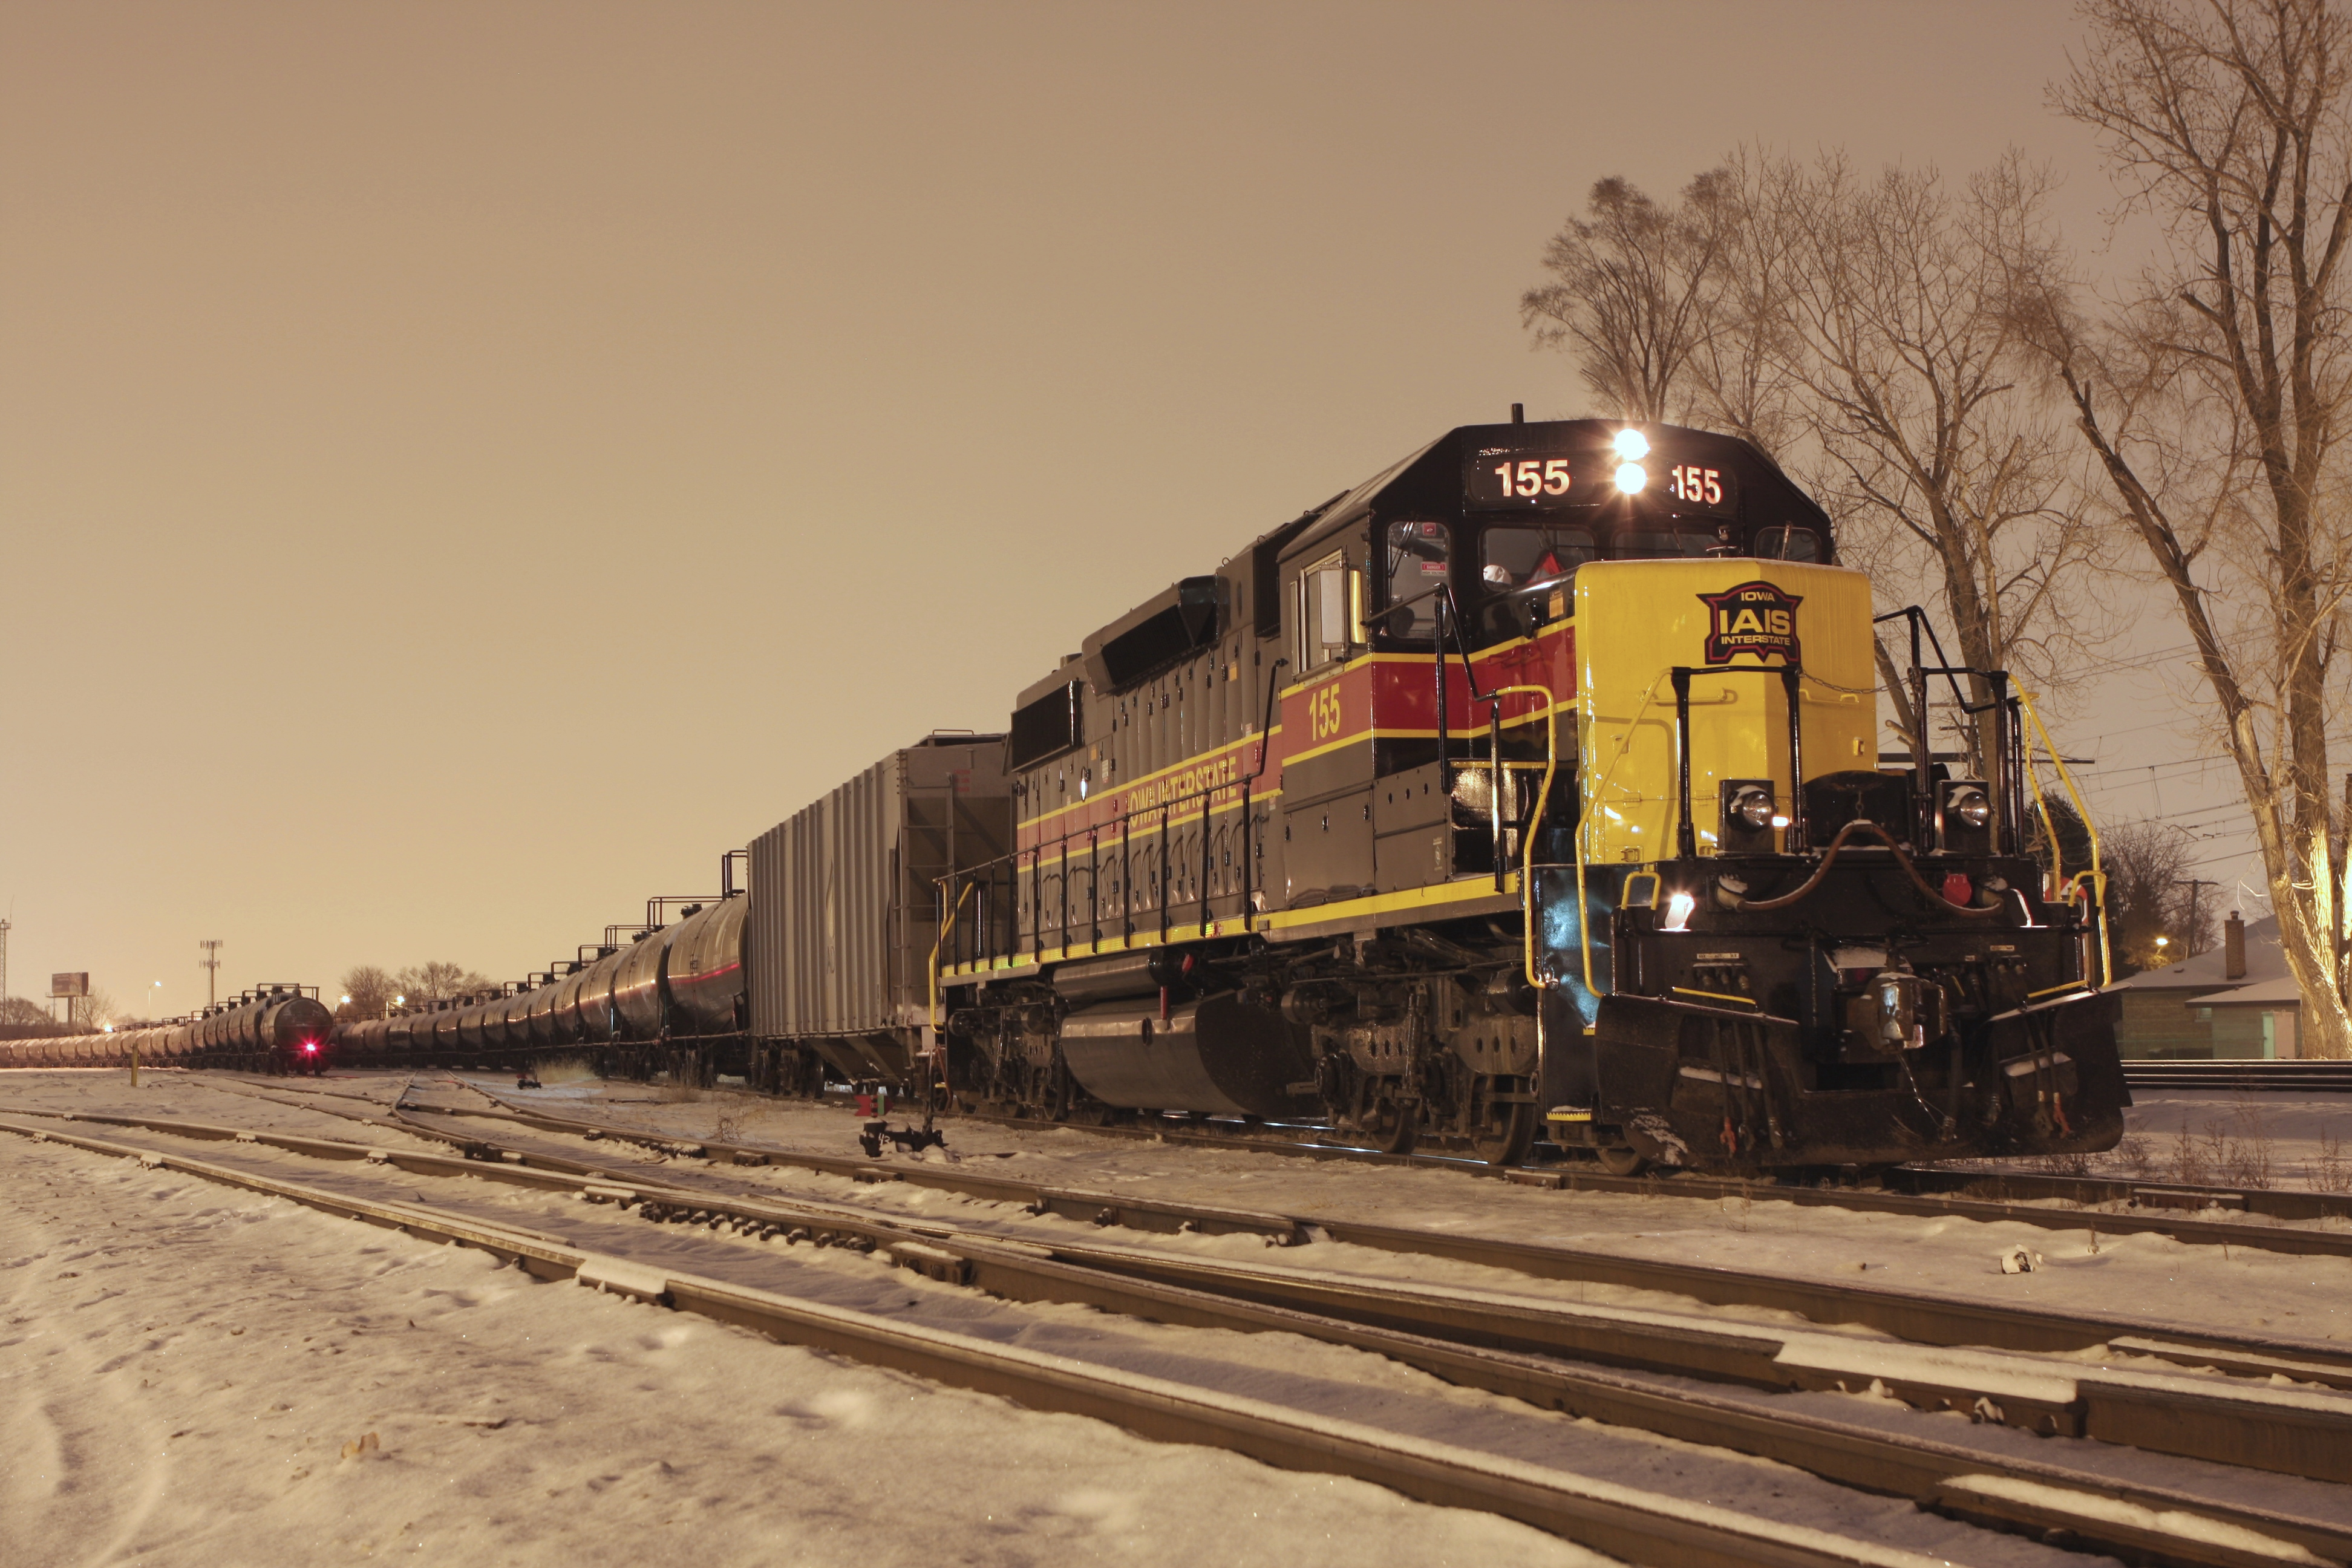 An inbound ethanol load is waiting to be handed off to the CRL, while an outbound empty ethanol train is ready to depart behind the 155. 12-17-10